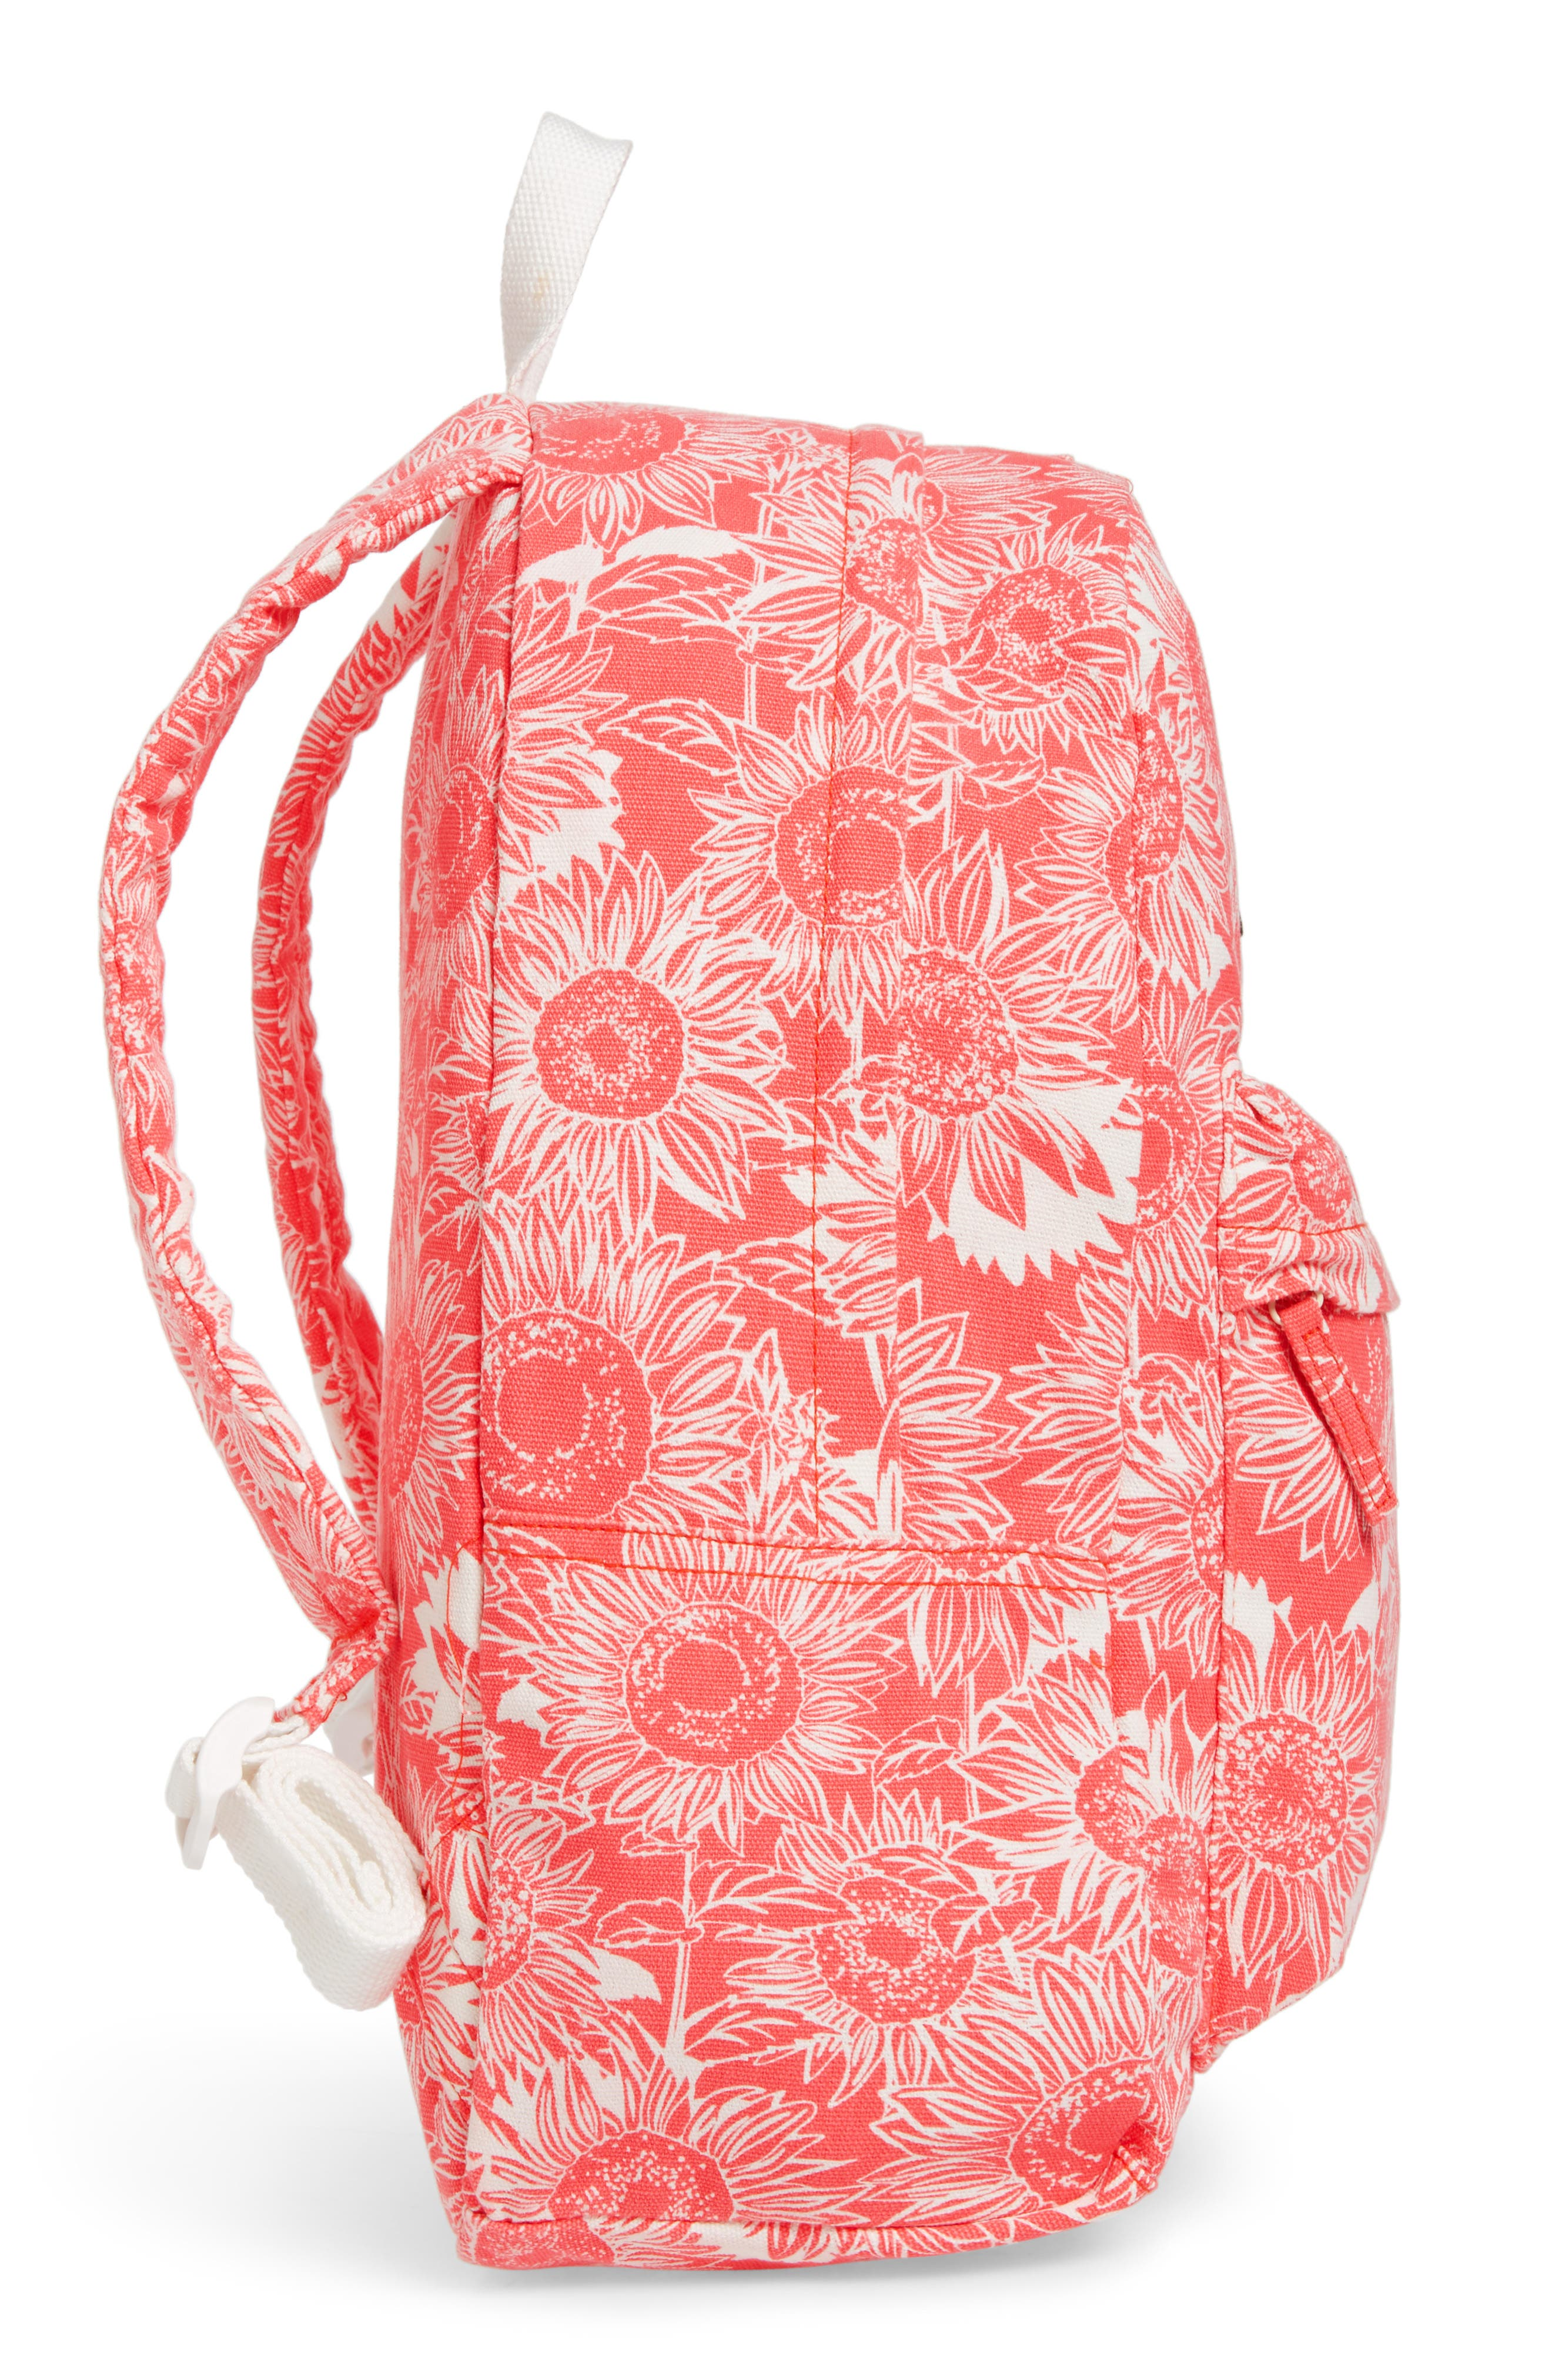 Play Date Canvas Backpack,                             Alternate thumbnail 3, color,                             Vintage Coral